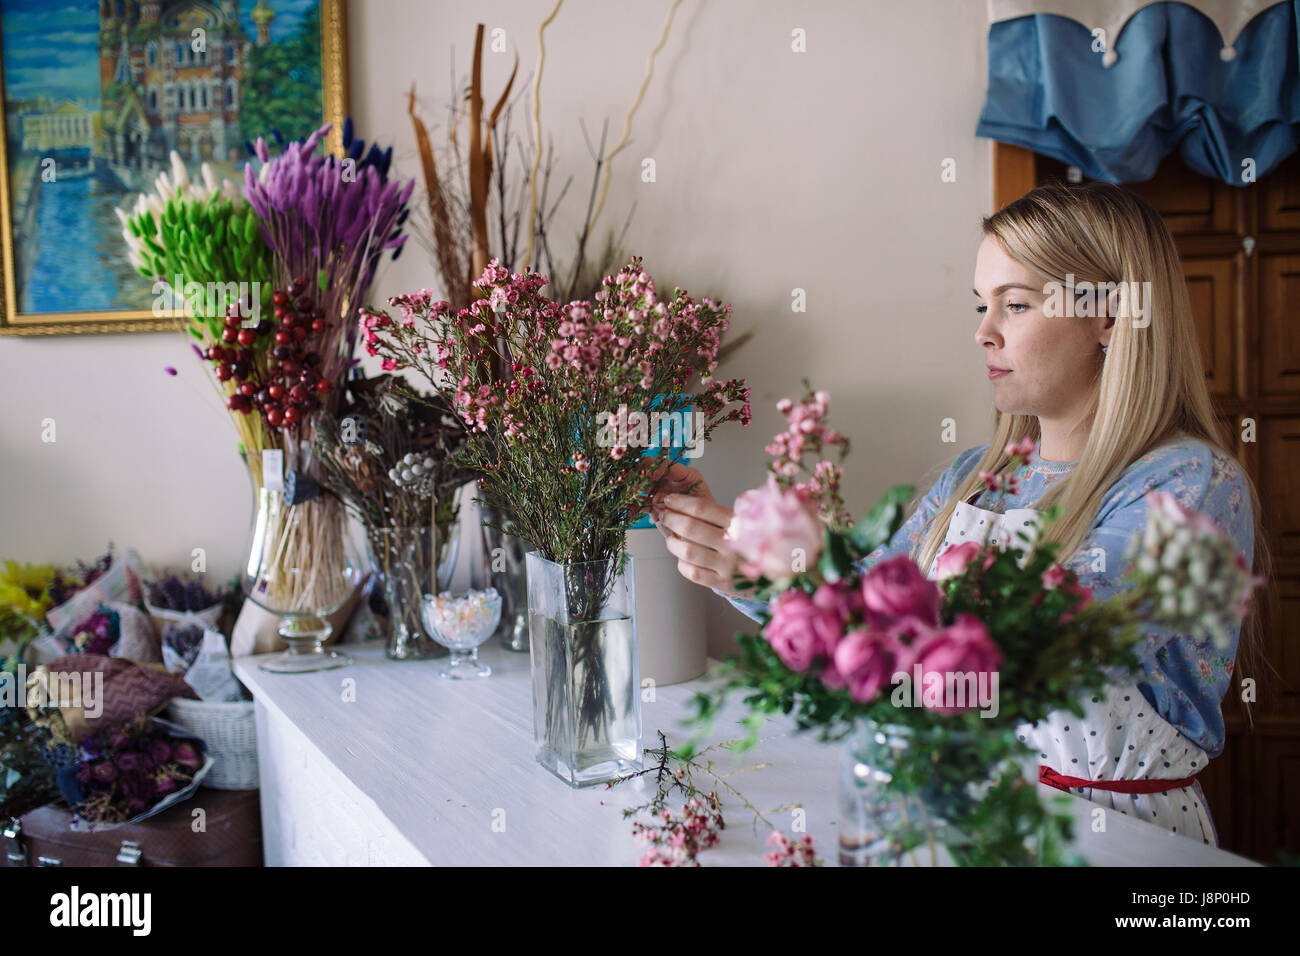 woman florist making bouquet of pink flowers indoor. Female florist preparing bouquet  in flower shop - Stock Image